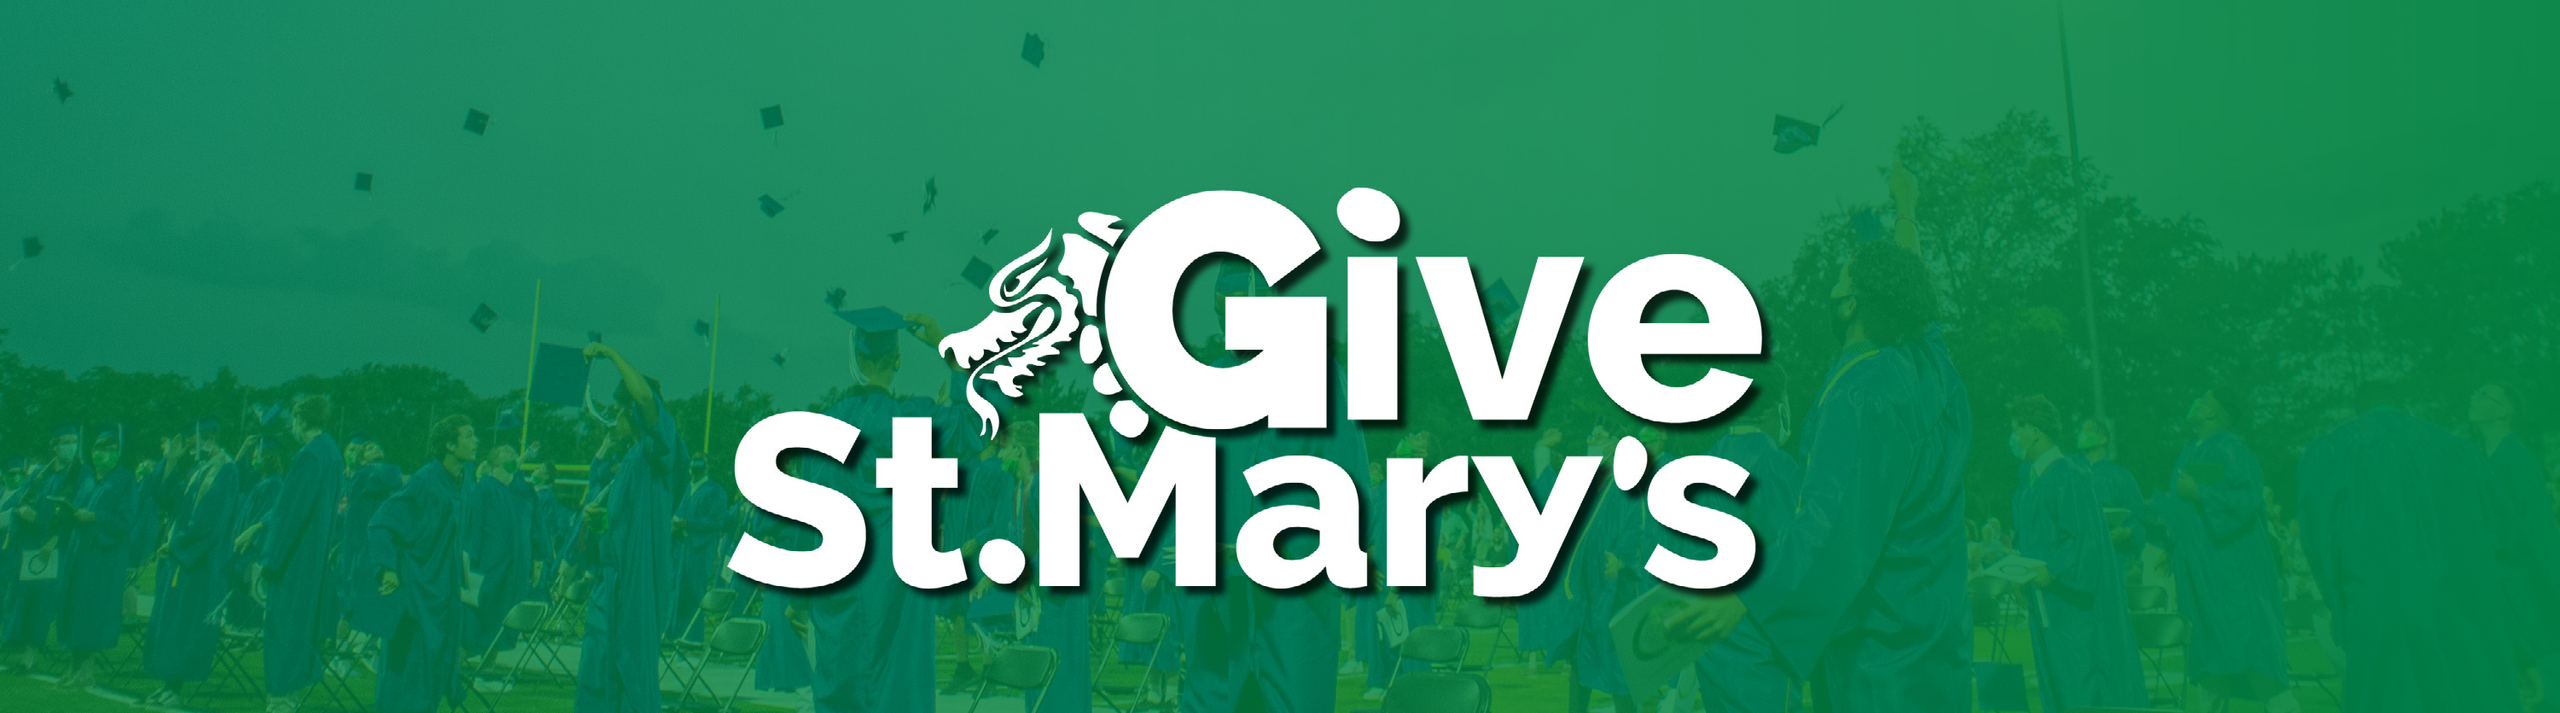 Give St. Mary's Online Fundraiser